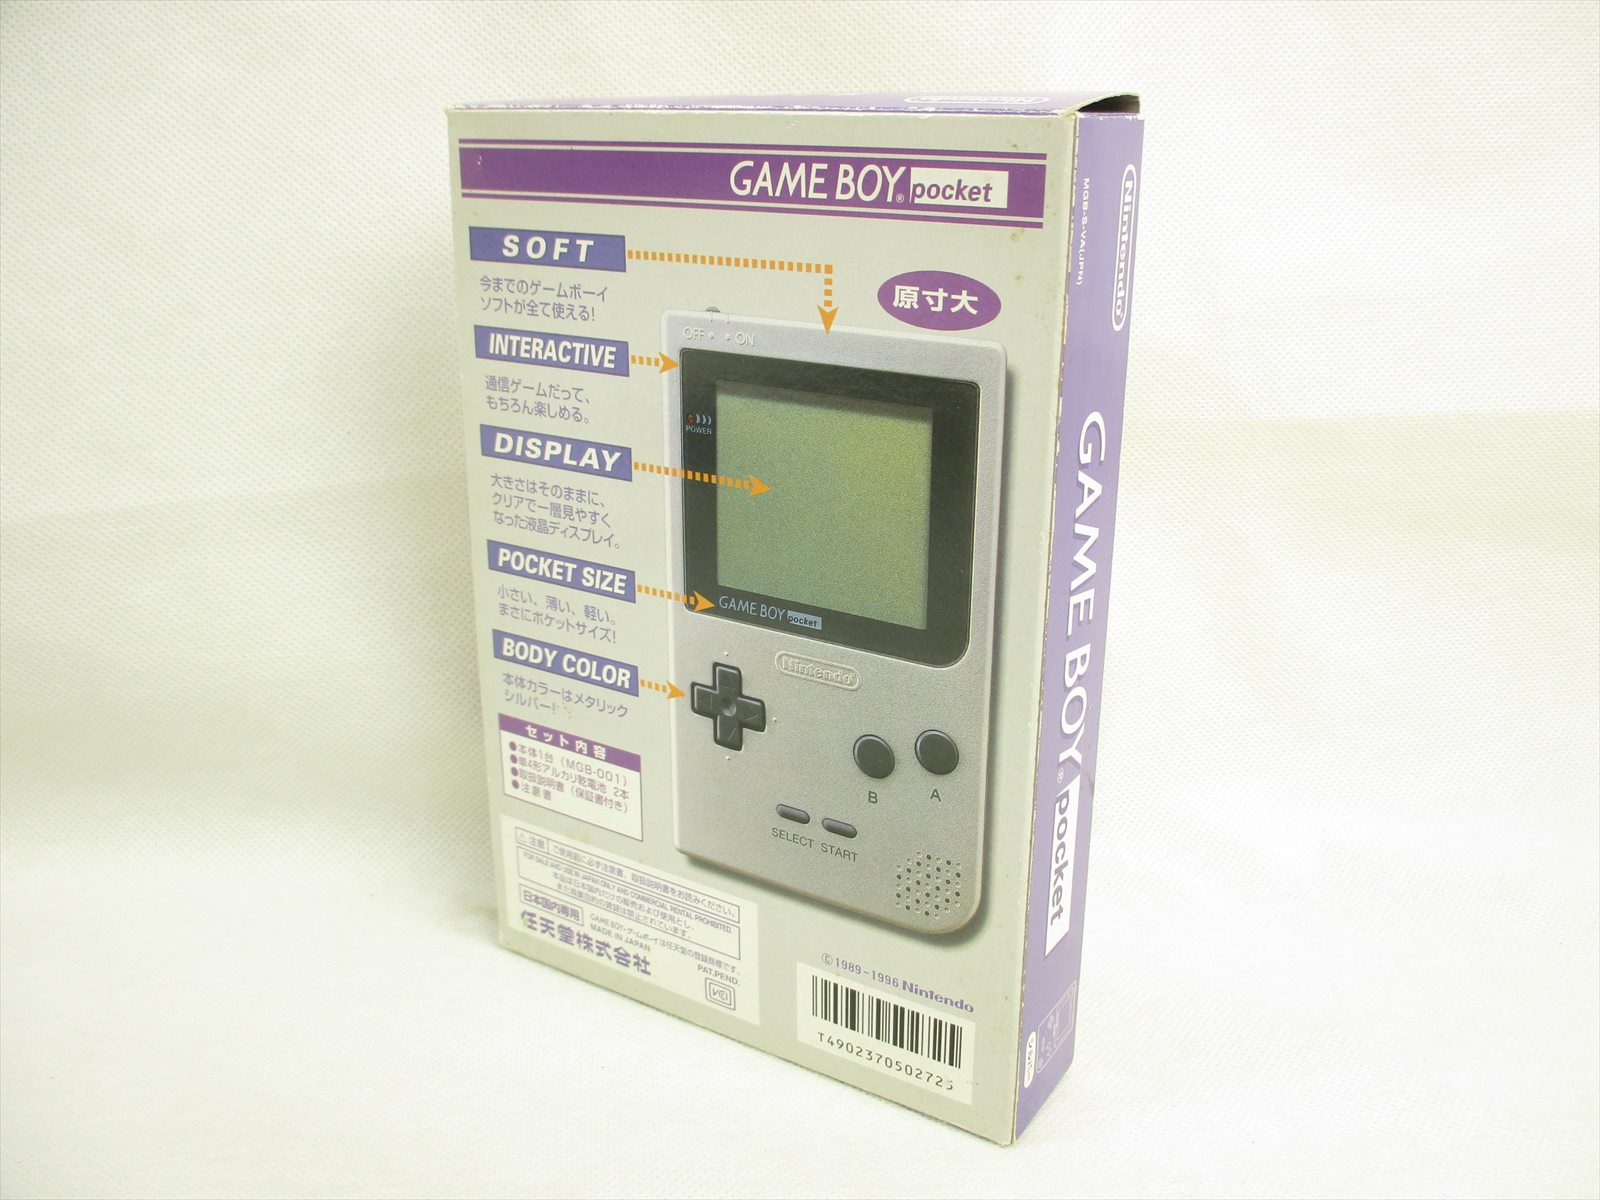 Game boy color japan - Thank You For Checking Our Auction